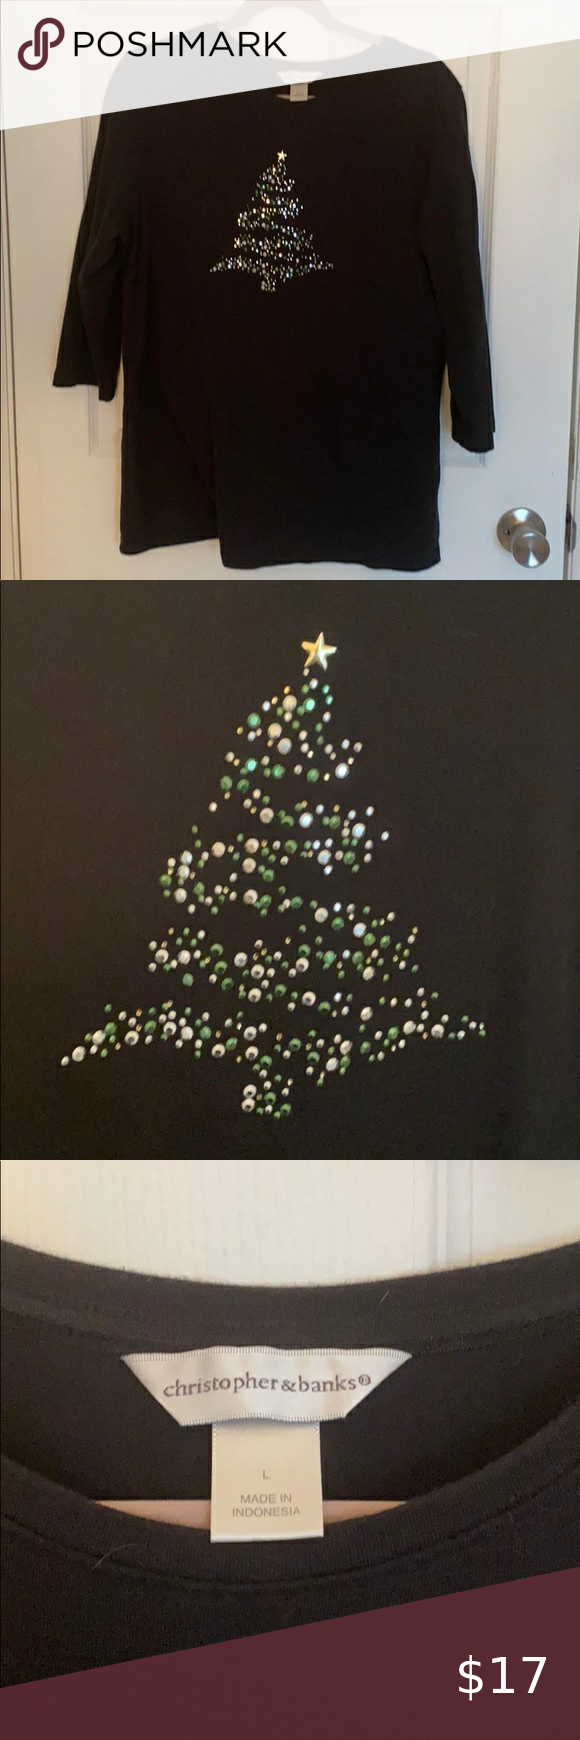 Christopher & Banks Christmas 🎄 Tree Tee Large Christopher & Banks black 3/4 sleeve tee Beautiful Christmas tree 🎄 design in green, silver, and gold Excellent Used Condition Armpit to armpit is 20 inches Christopher & Banks Tops Tees - Long Sleeve